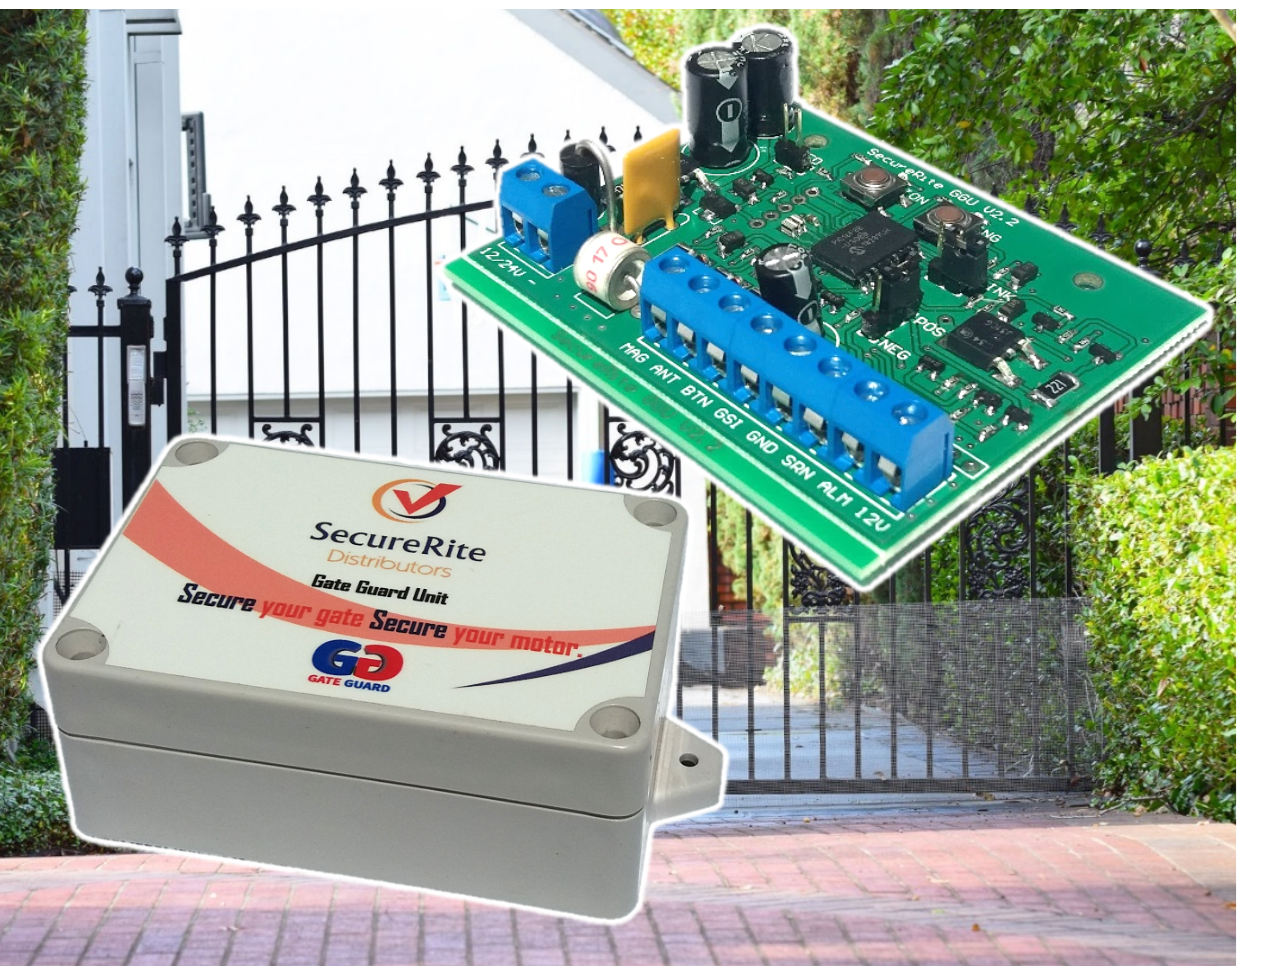 SecureRite Smart Gate Alarm for Intrusion Detection